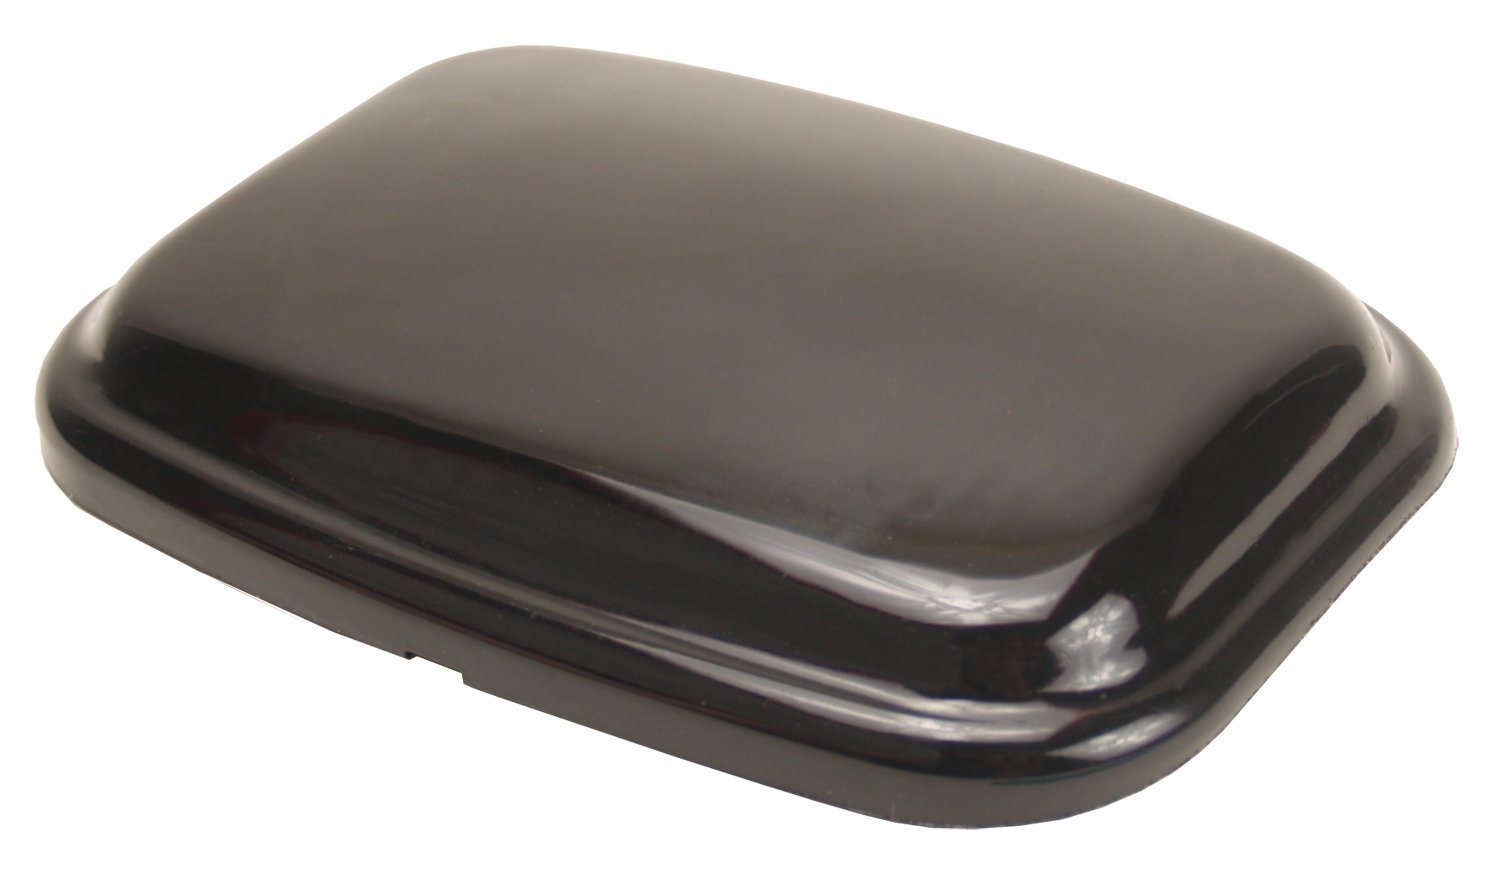 Pacer Performance 25-535 Black Bumper Protector Pad Kit - 2 Piece